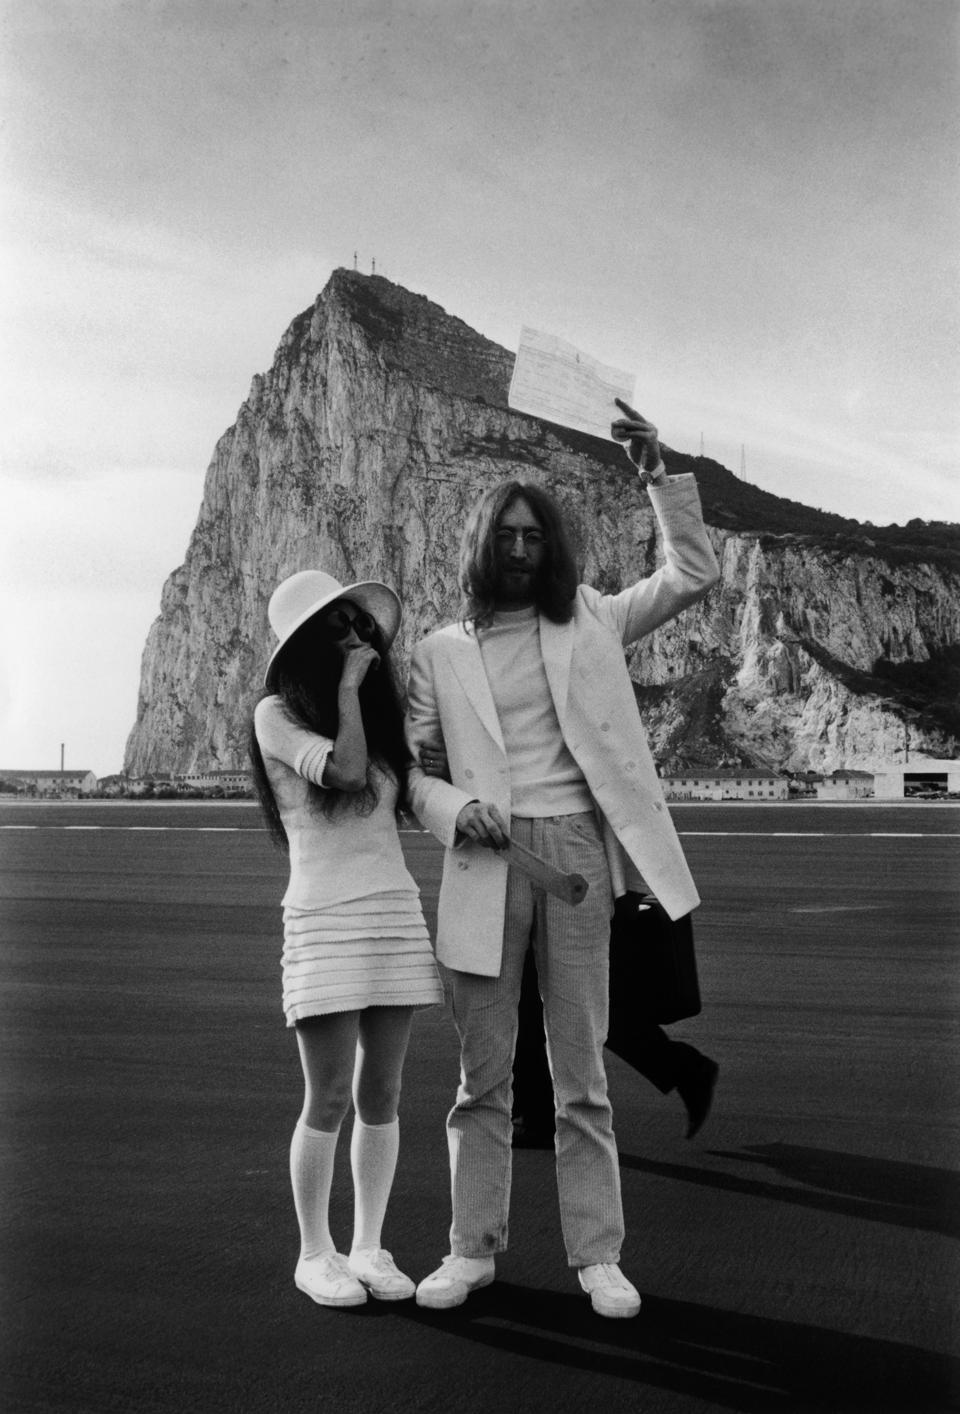 John Lennon and Yoko Ono with their marriage certificate after their wedding in Gibraltar, 20th March 1969.